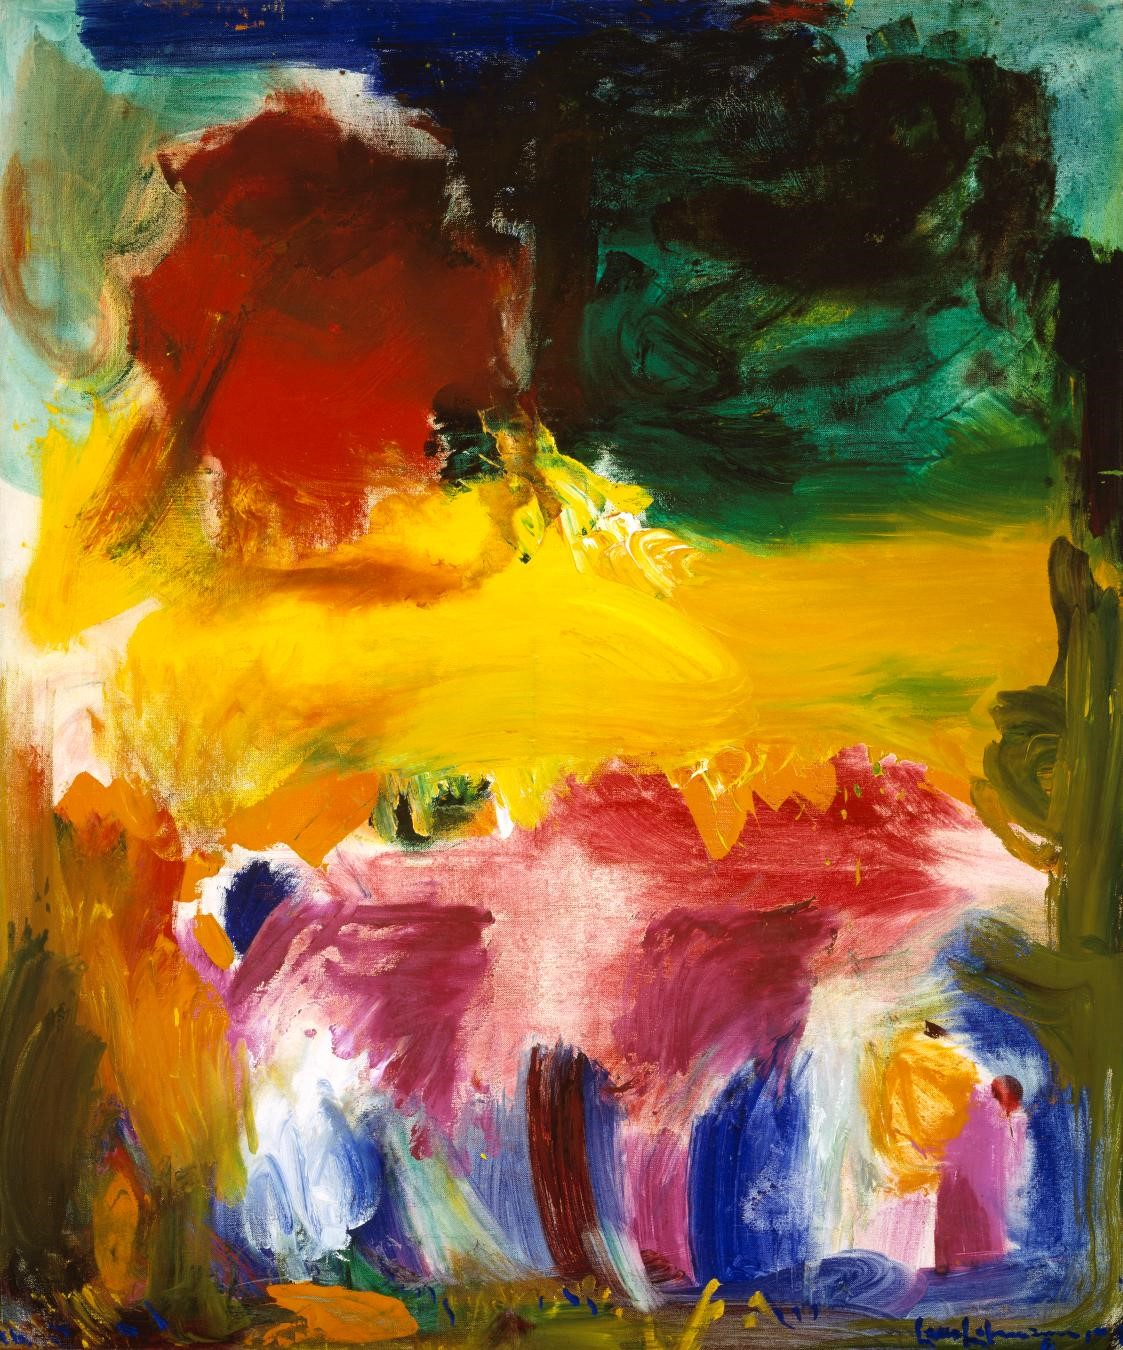 FOR SUN BLOG POST ONLY - Hans Hofmann, Fiat Lux